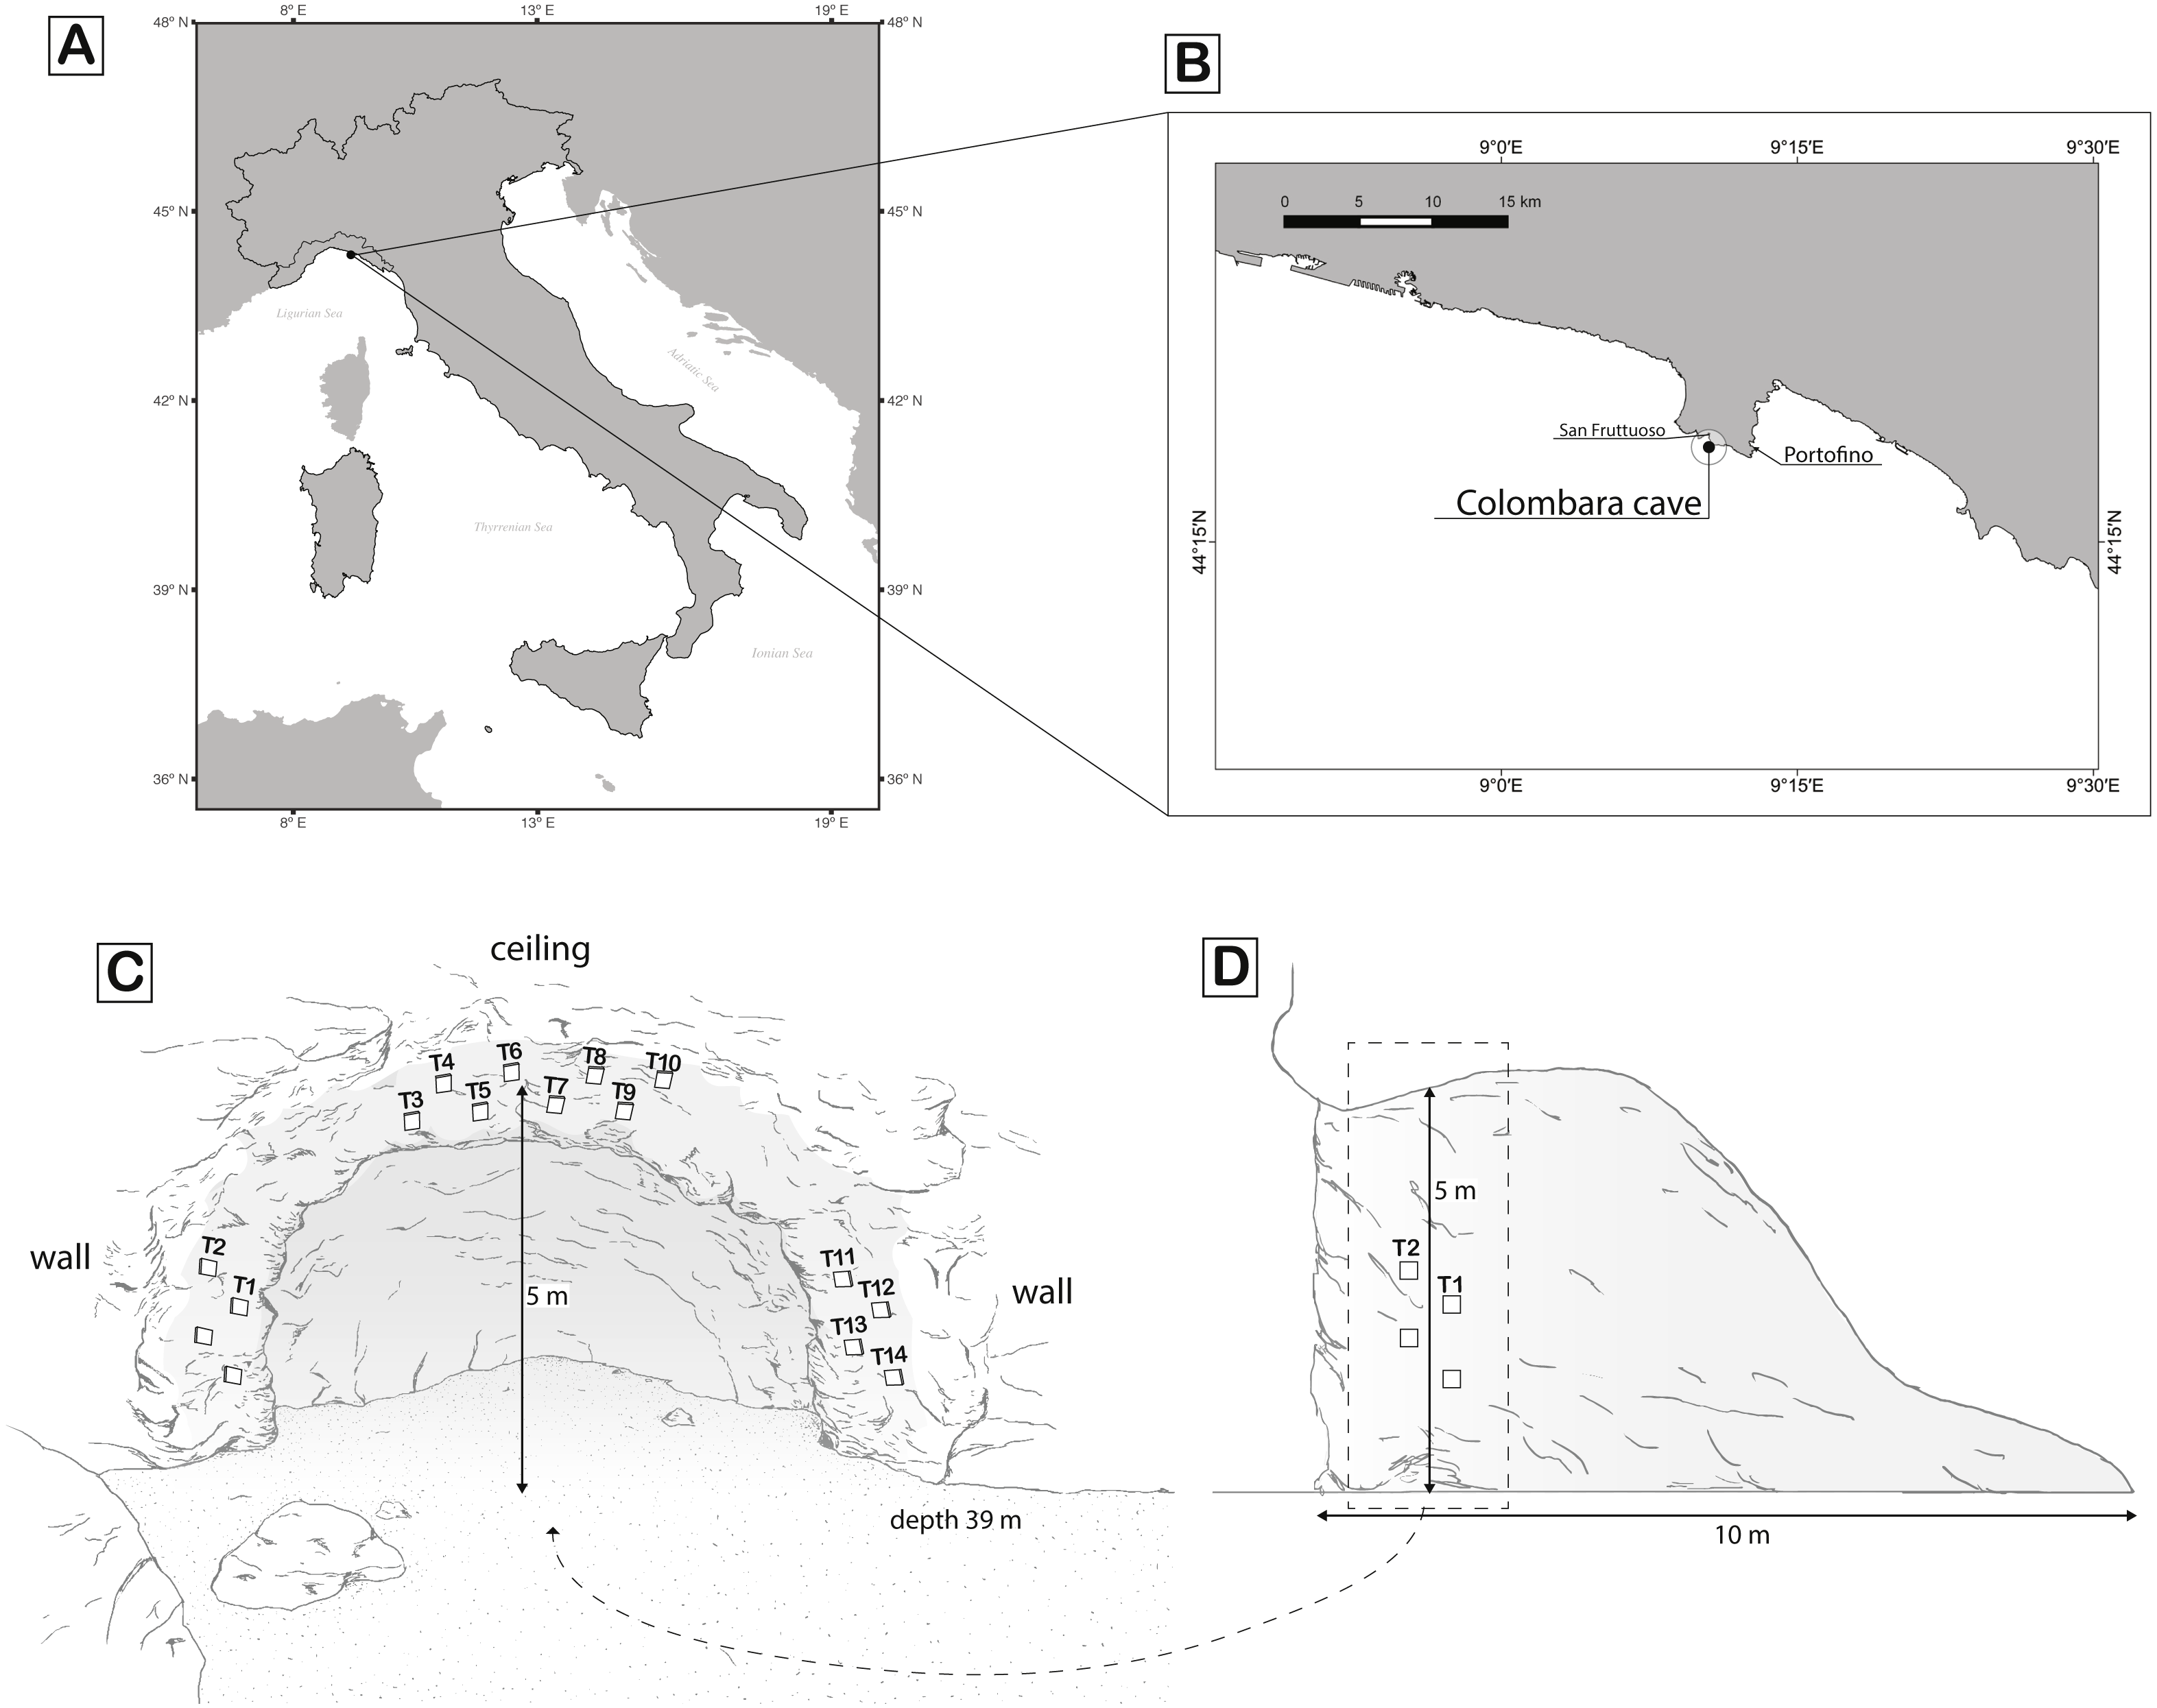 Living upside down: patterns of red coral settlement in a cave [PeerJ]